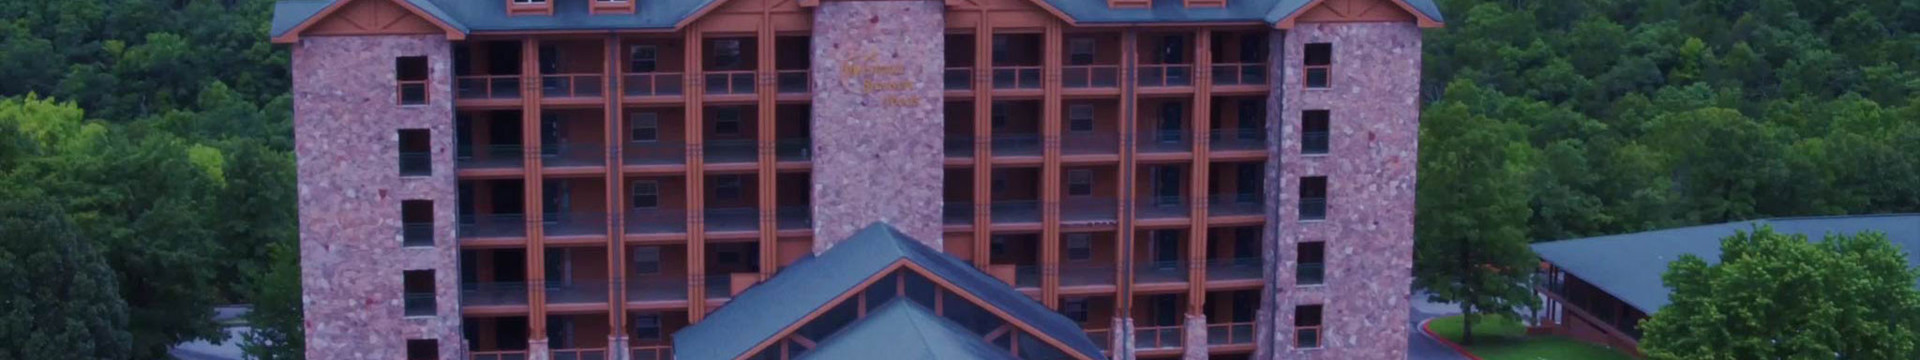 Branson Hotel near Roark Valley Road | Westgate Branson Woods Resort